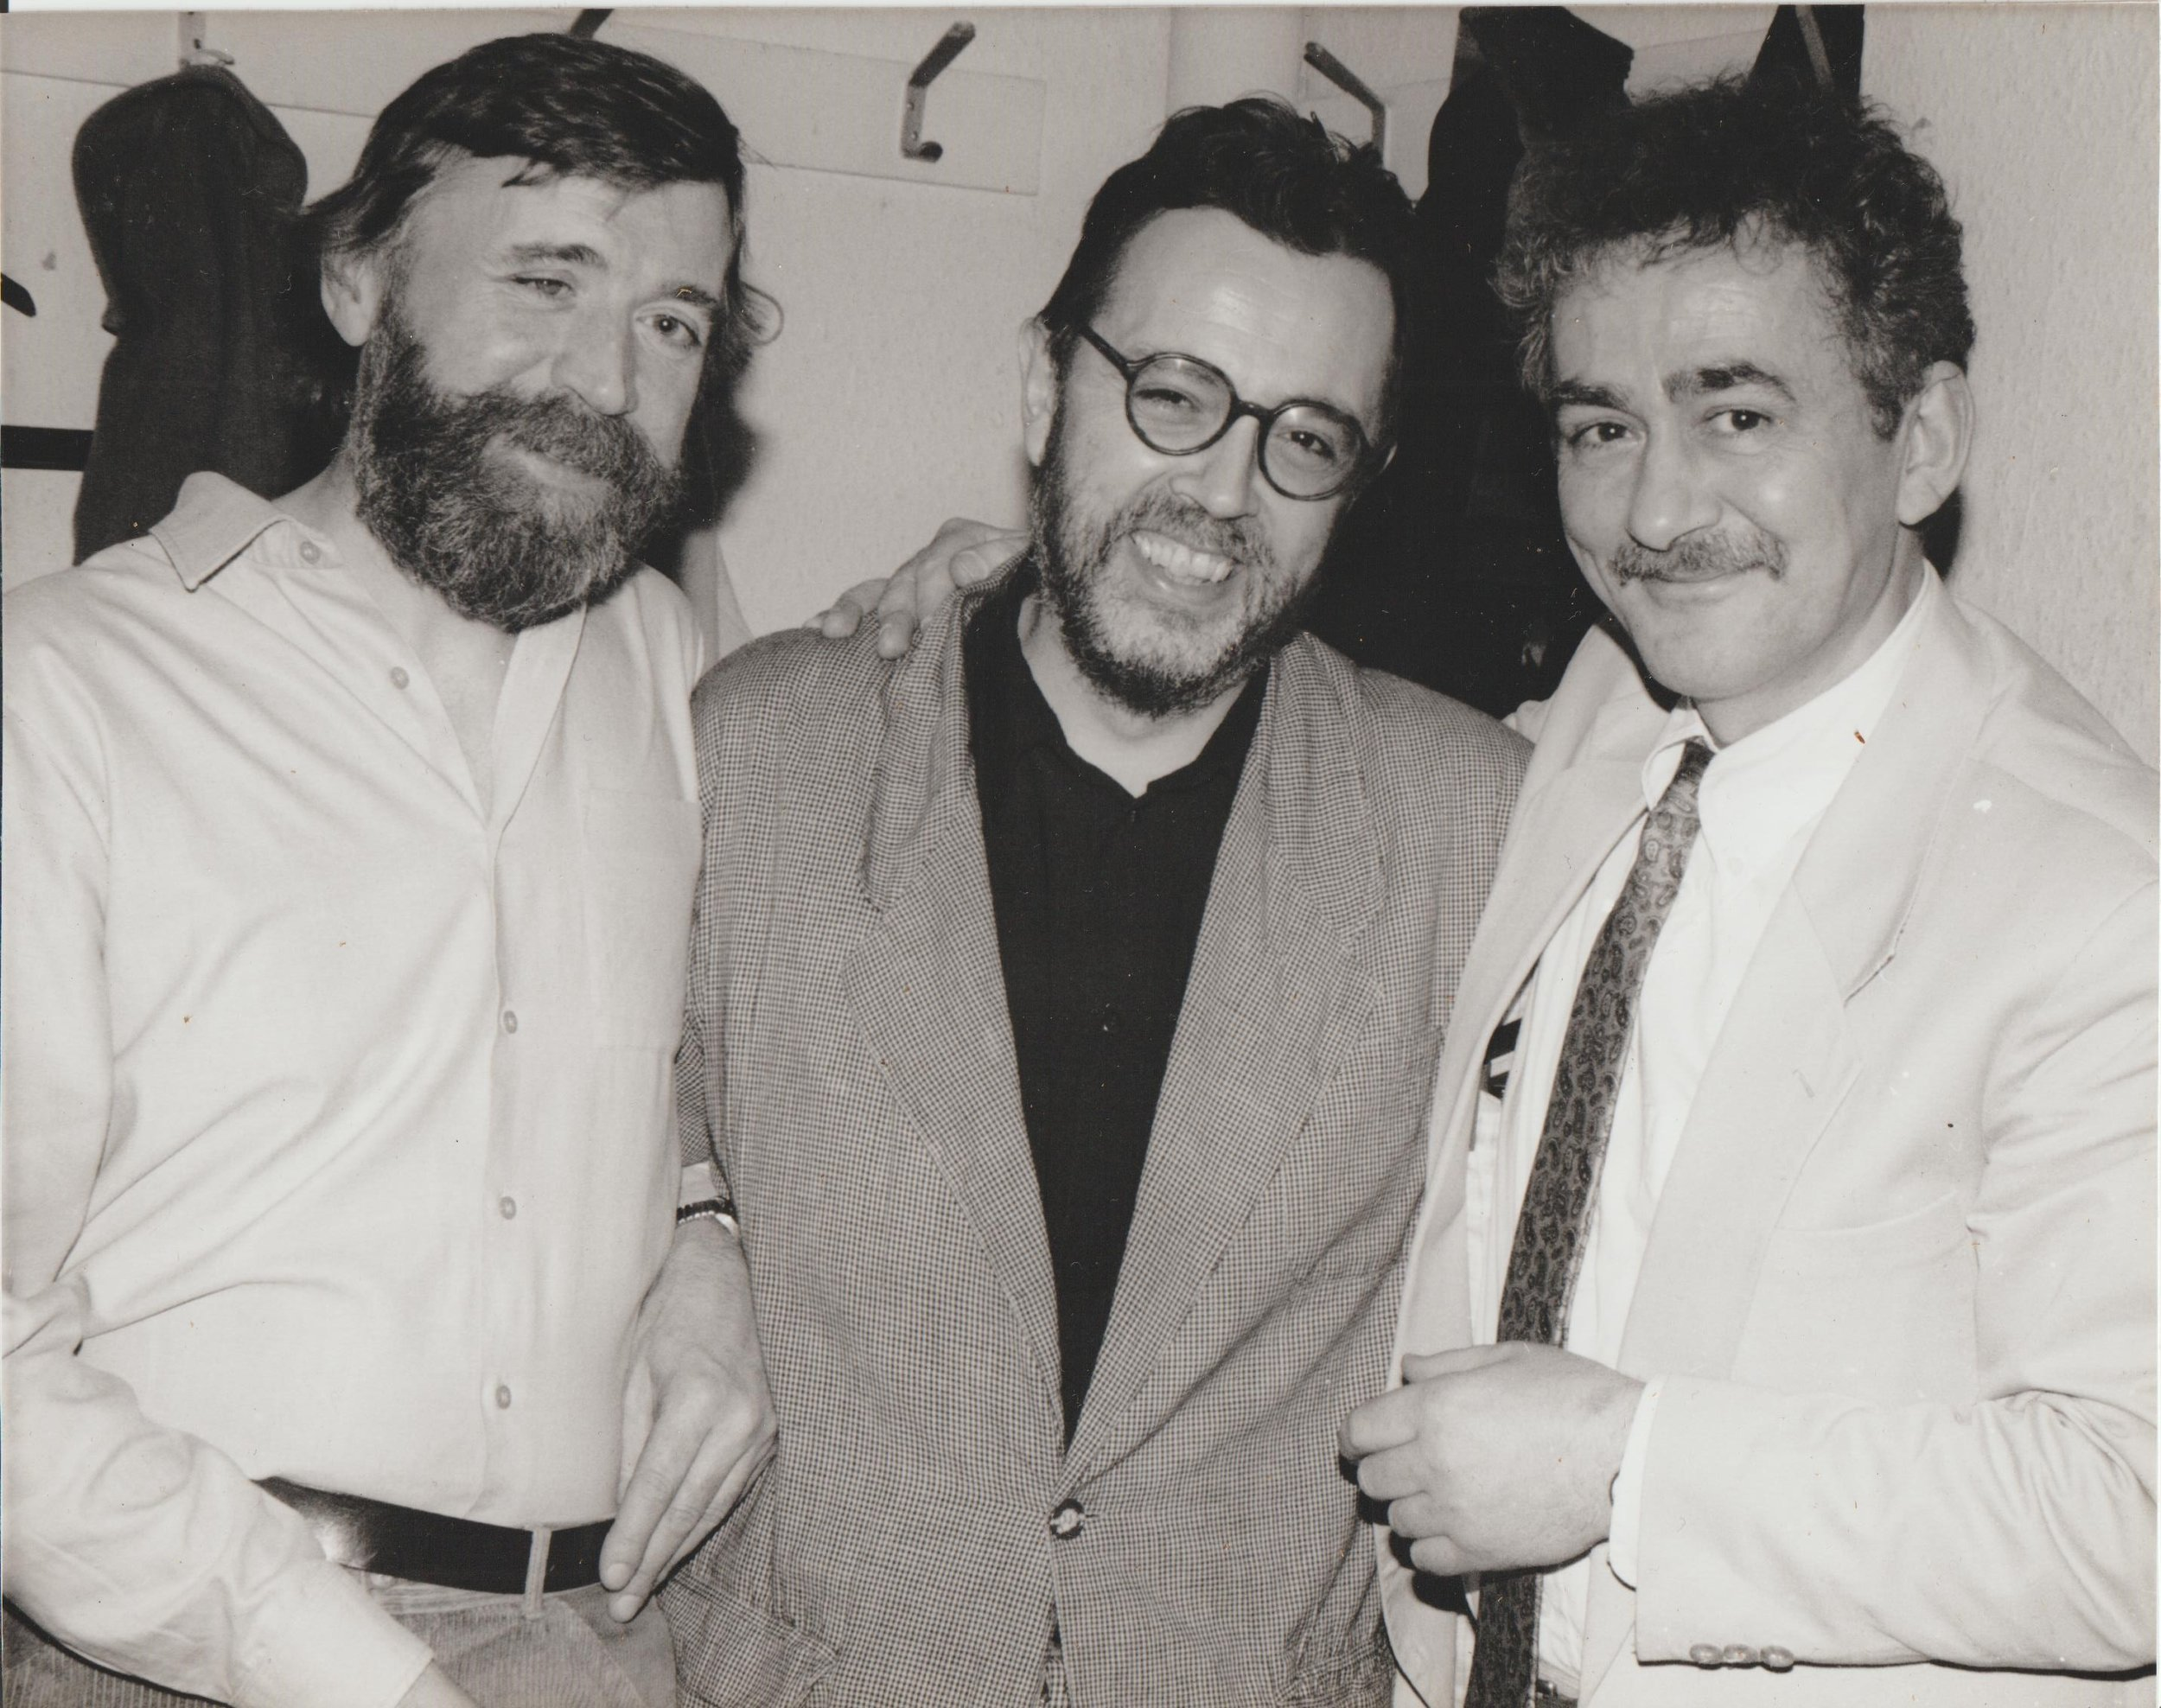 Ron Mathewson, Spike Wells and Mick Pyne downstairs at Ronnie Scott's January 1990 during our week's trio engagement